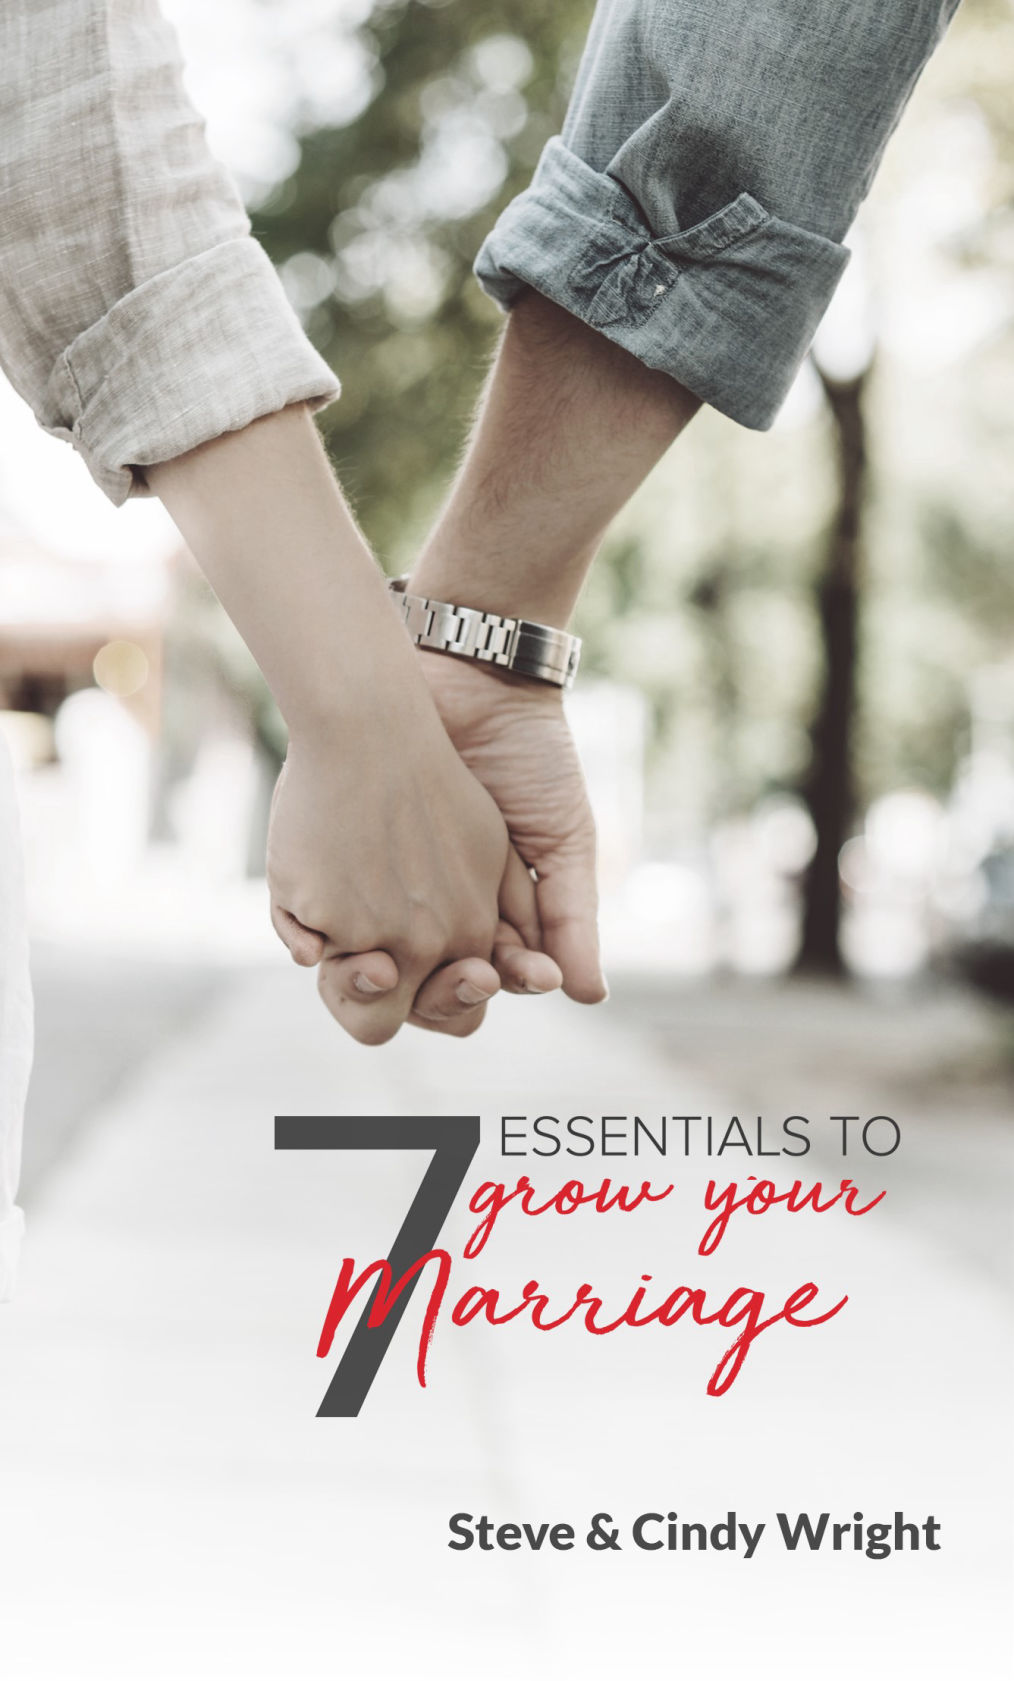 7 Essentials to Grow Your Marriage